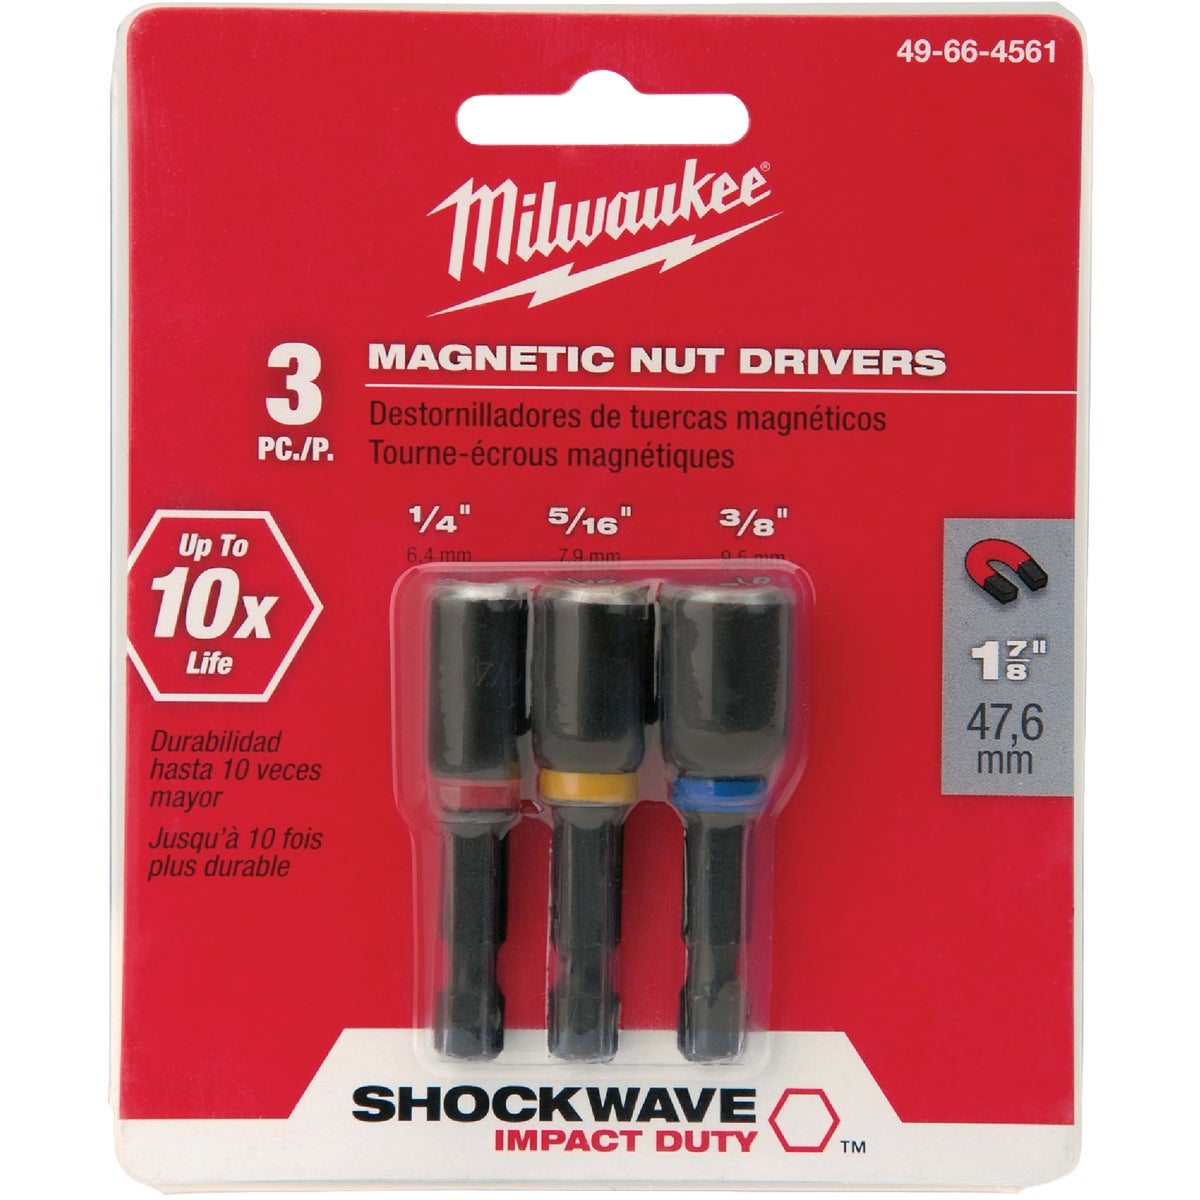 "3PC 1-7/8"" NUTDRIVER SET - 49-66-4561 by Milwaukee Accessory"